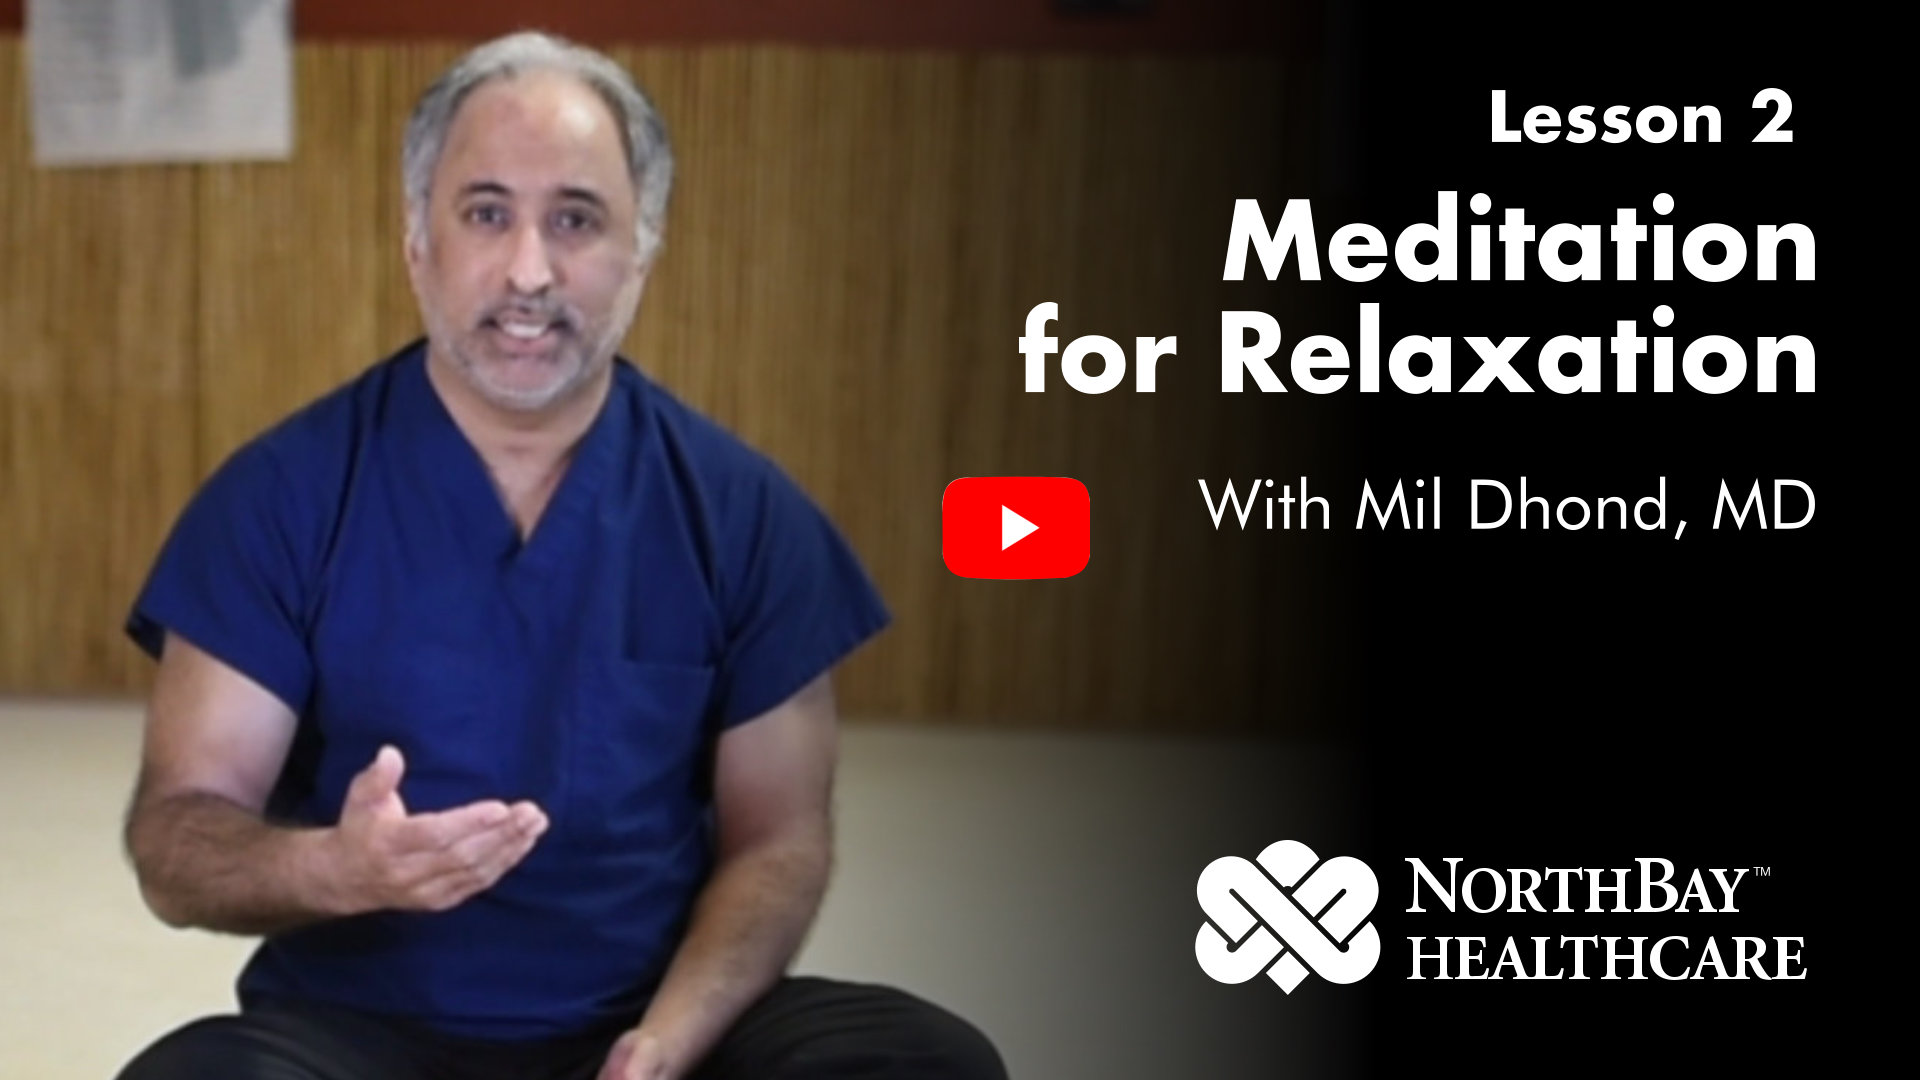 Lesson 2: Dr. Dhond's demonstrates using meditation for relaxation